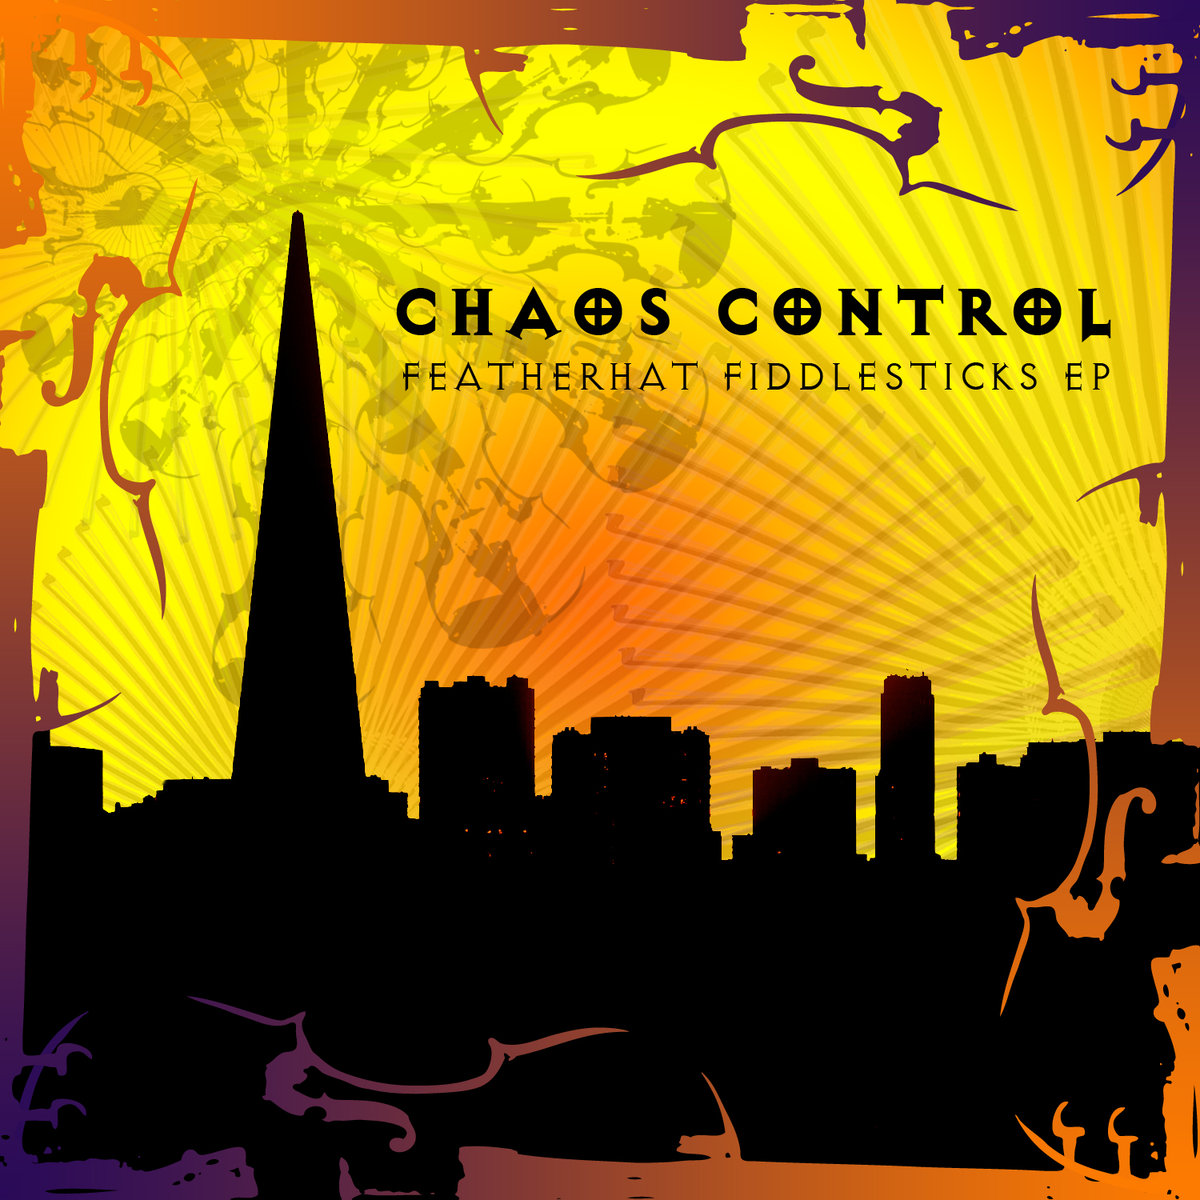 Chaos Control - Featherhat Fiddlesticks @ 'Featherhat Fiddlesticks' album (bass, chaos control)